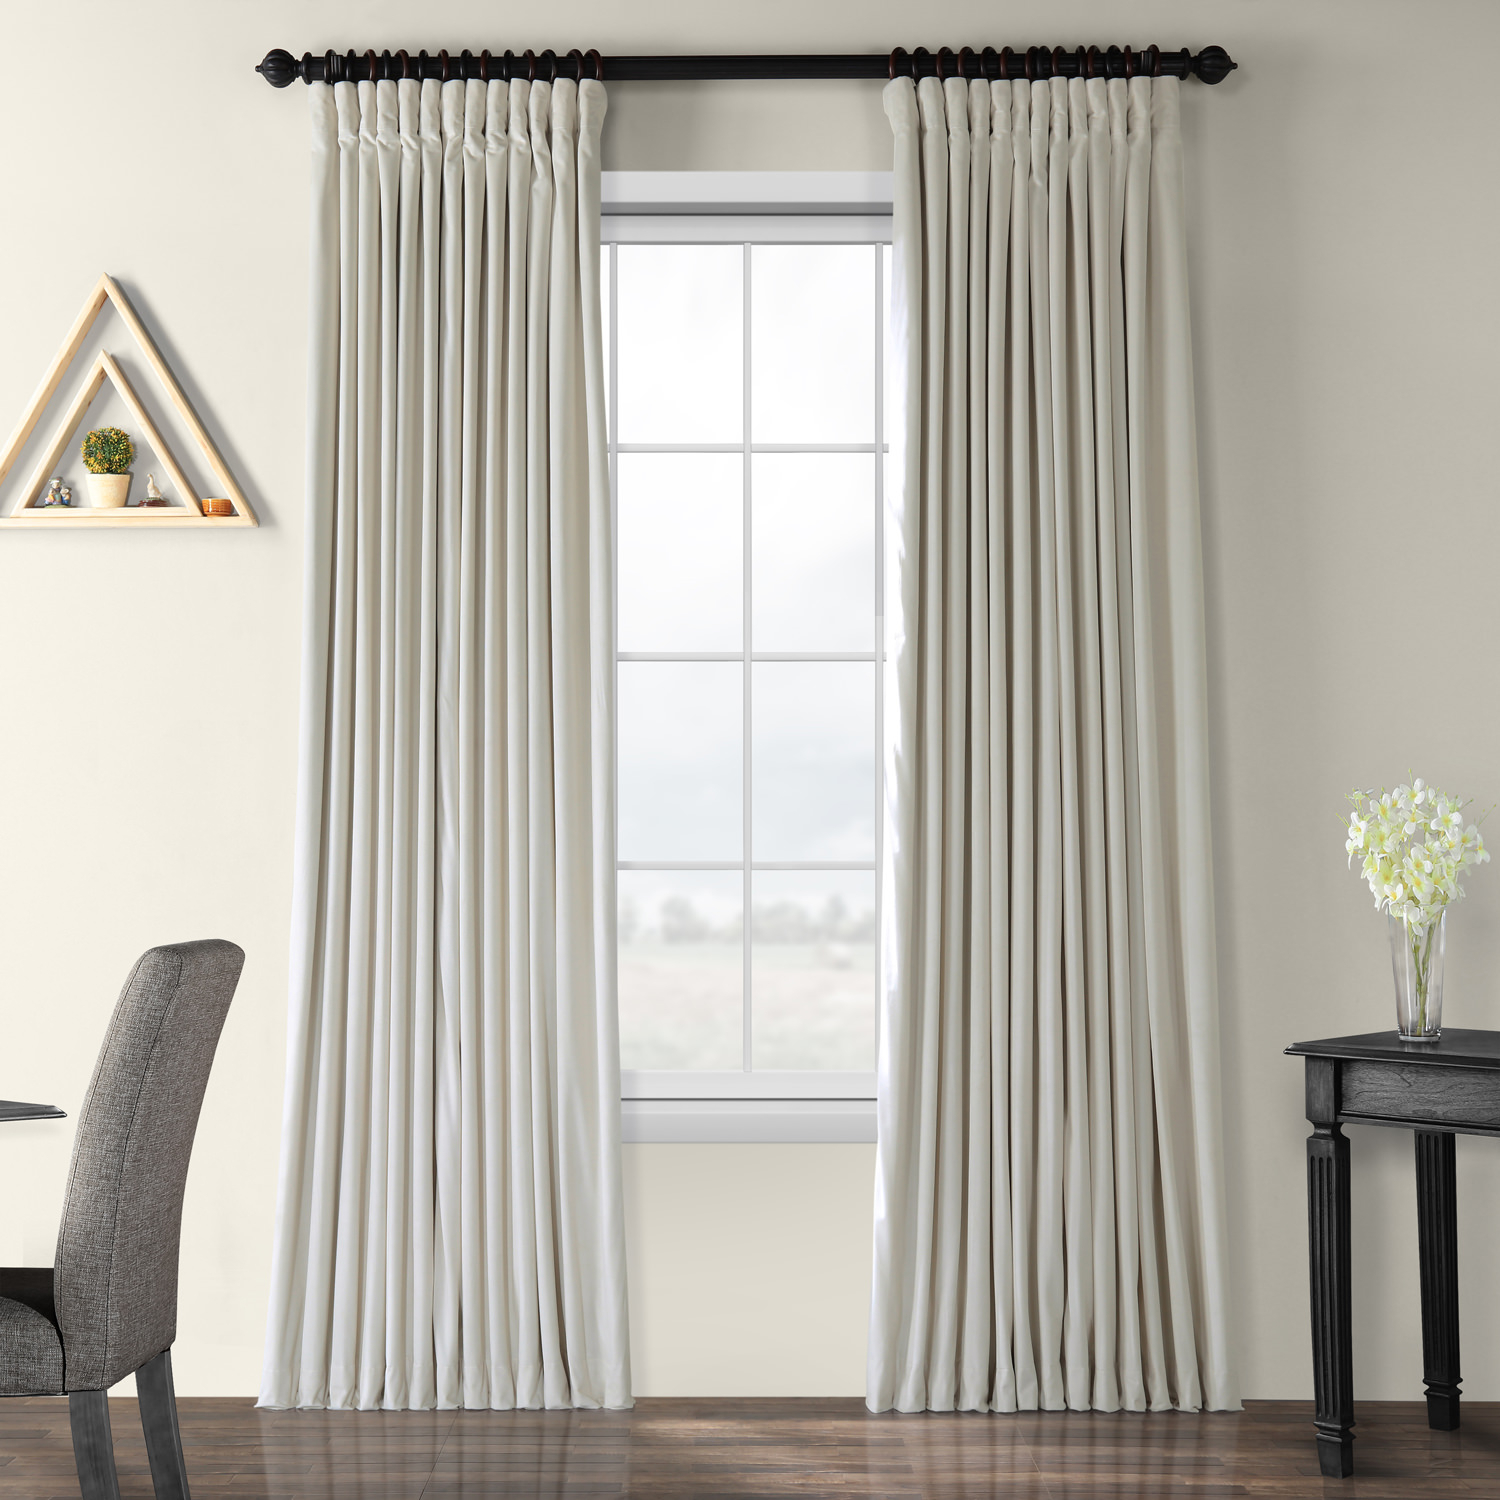 Silk Curtains And Drapes | Silk Curtain Shop For Signature White Double Layer Sheer Curtain Panels (View 27 of 30)